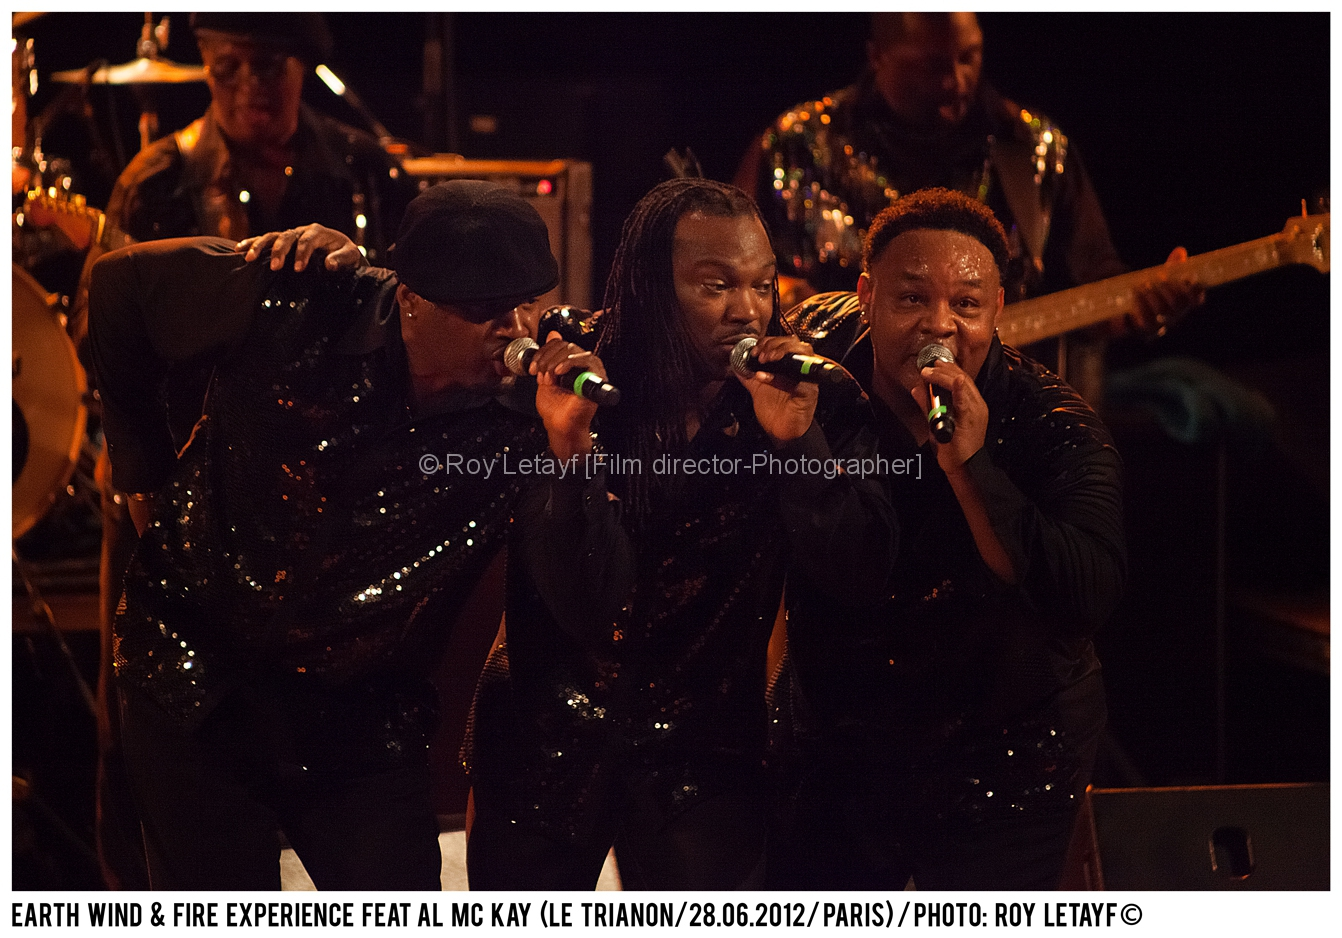 earth wind and fire video about Check out september by earth wind & fire on amazon music stream ad-free or purchase cd's and mp3s now on amazoncom the video content is inappropriate.